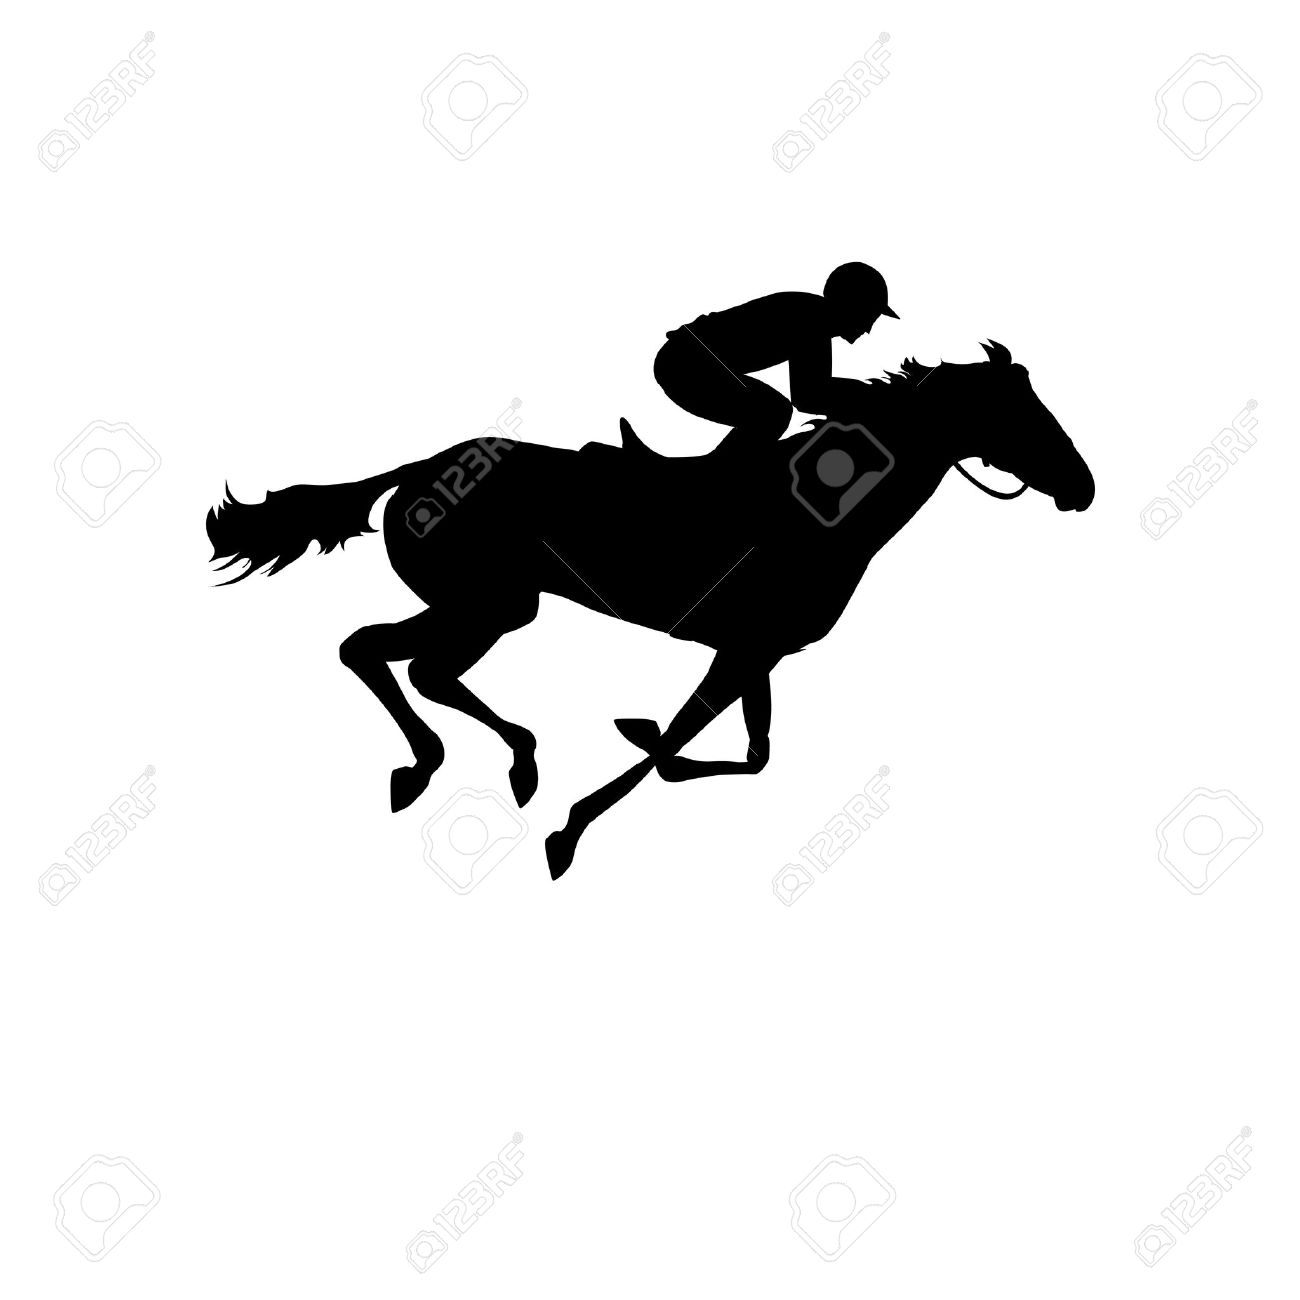 Horse Race Silhouette Of Racing With Jockey On Isolated Background And